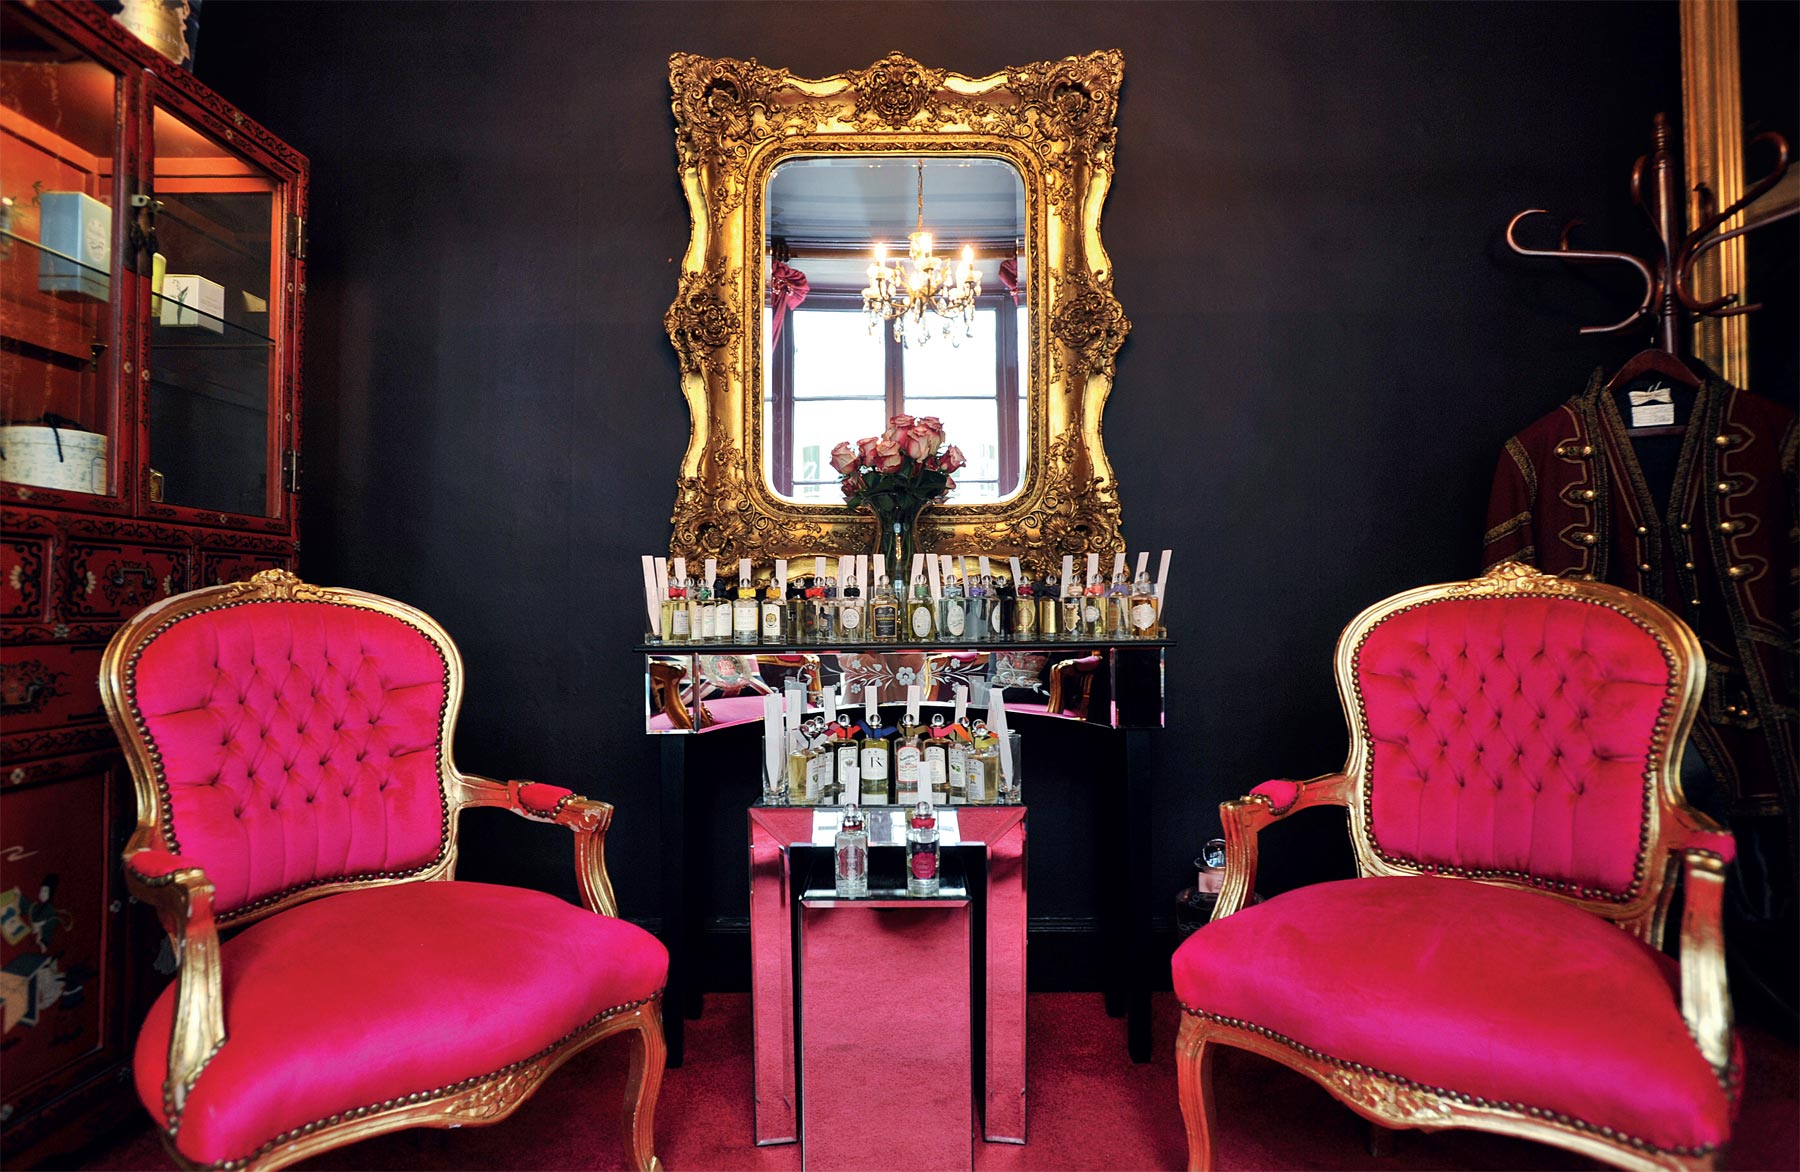 We Go To Penhaligon's In Search Of The Perfect Perfume 1